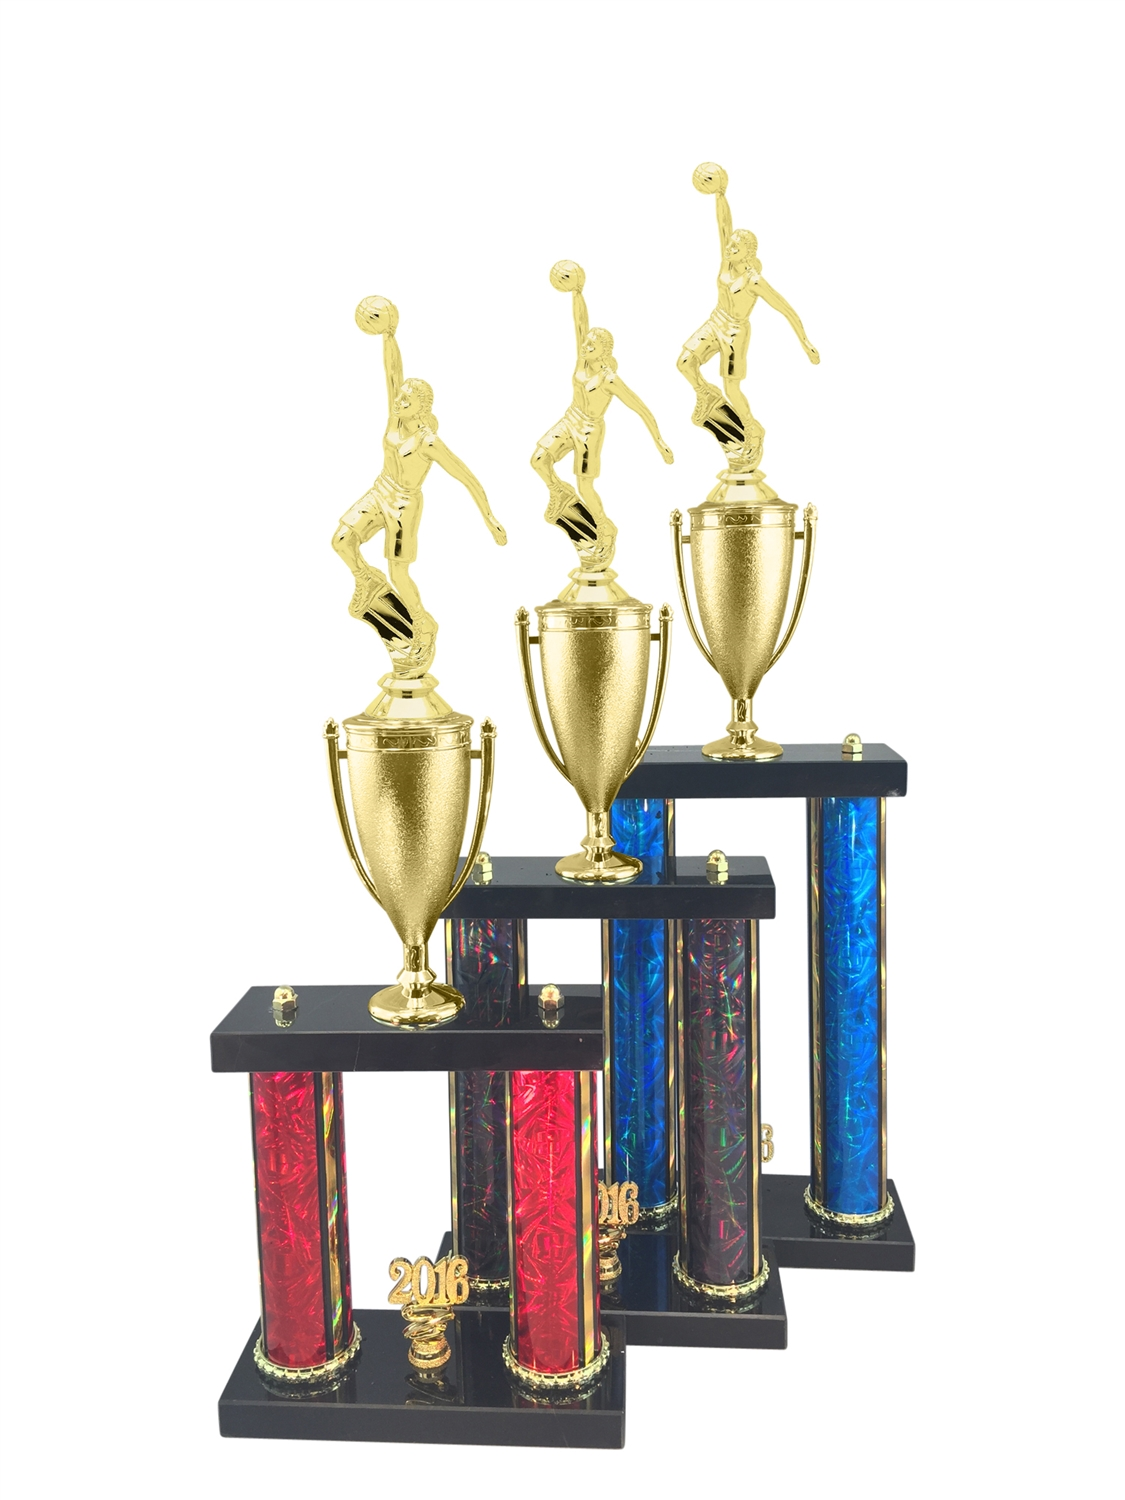 Female Basketball Dunk Trophy Available in 11 Color & 3 Size Options